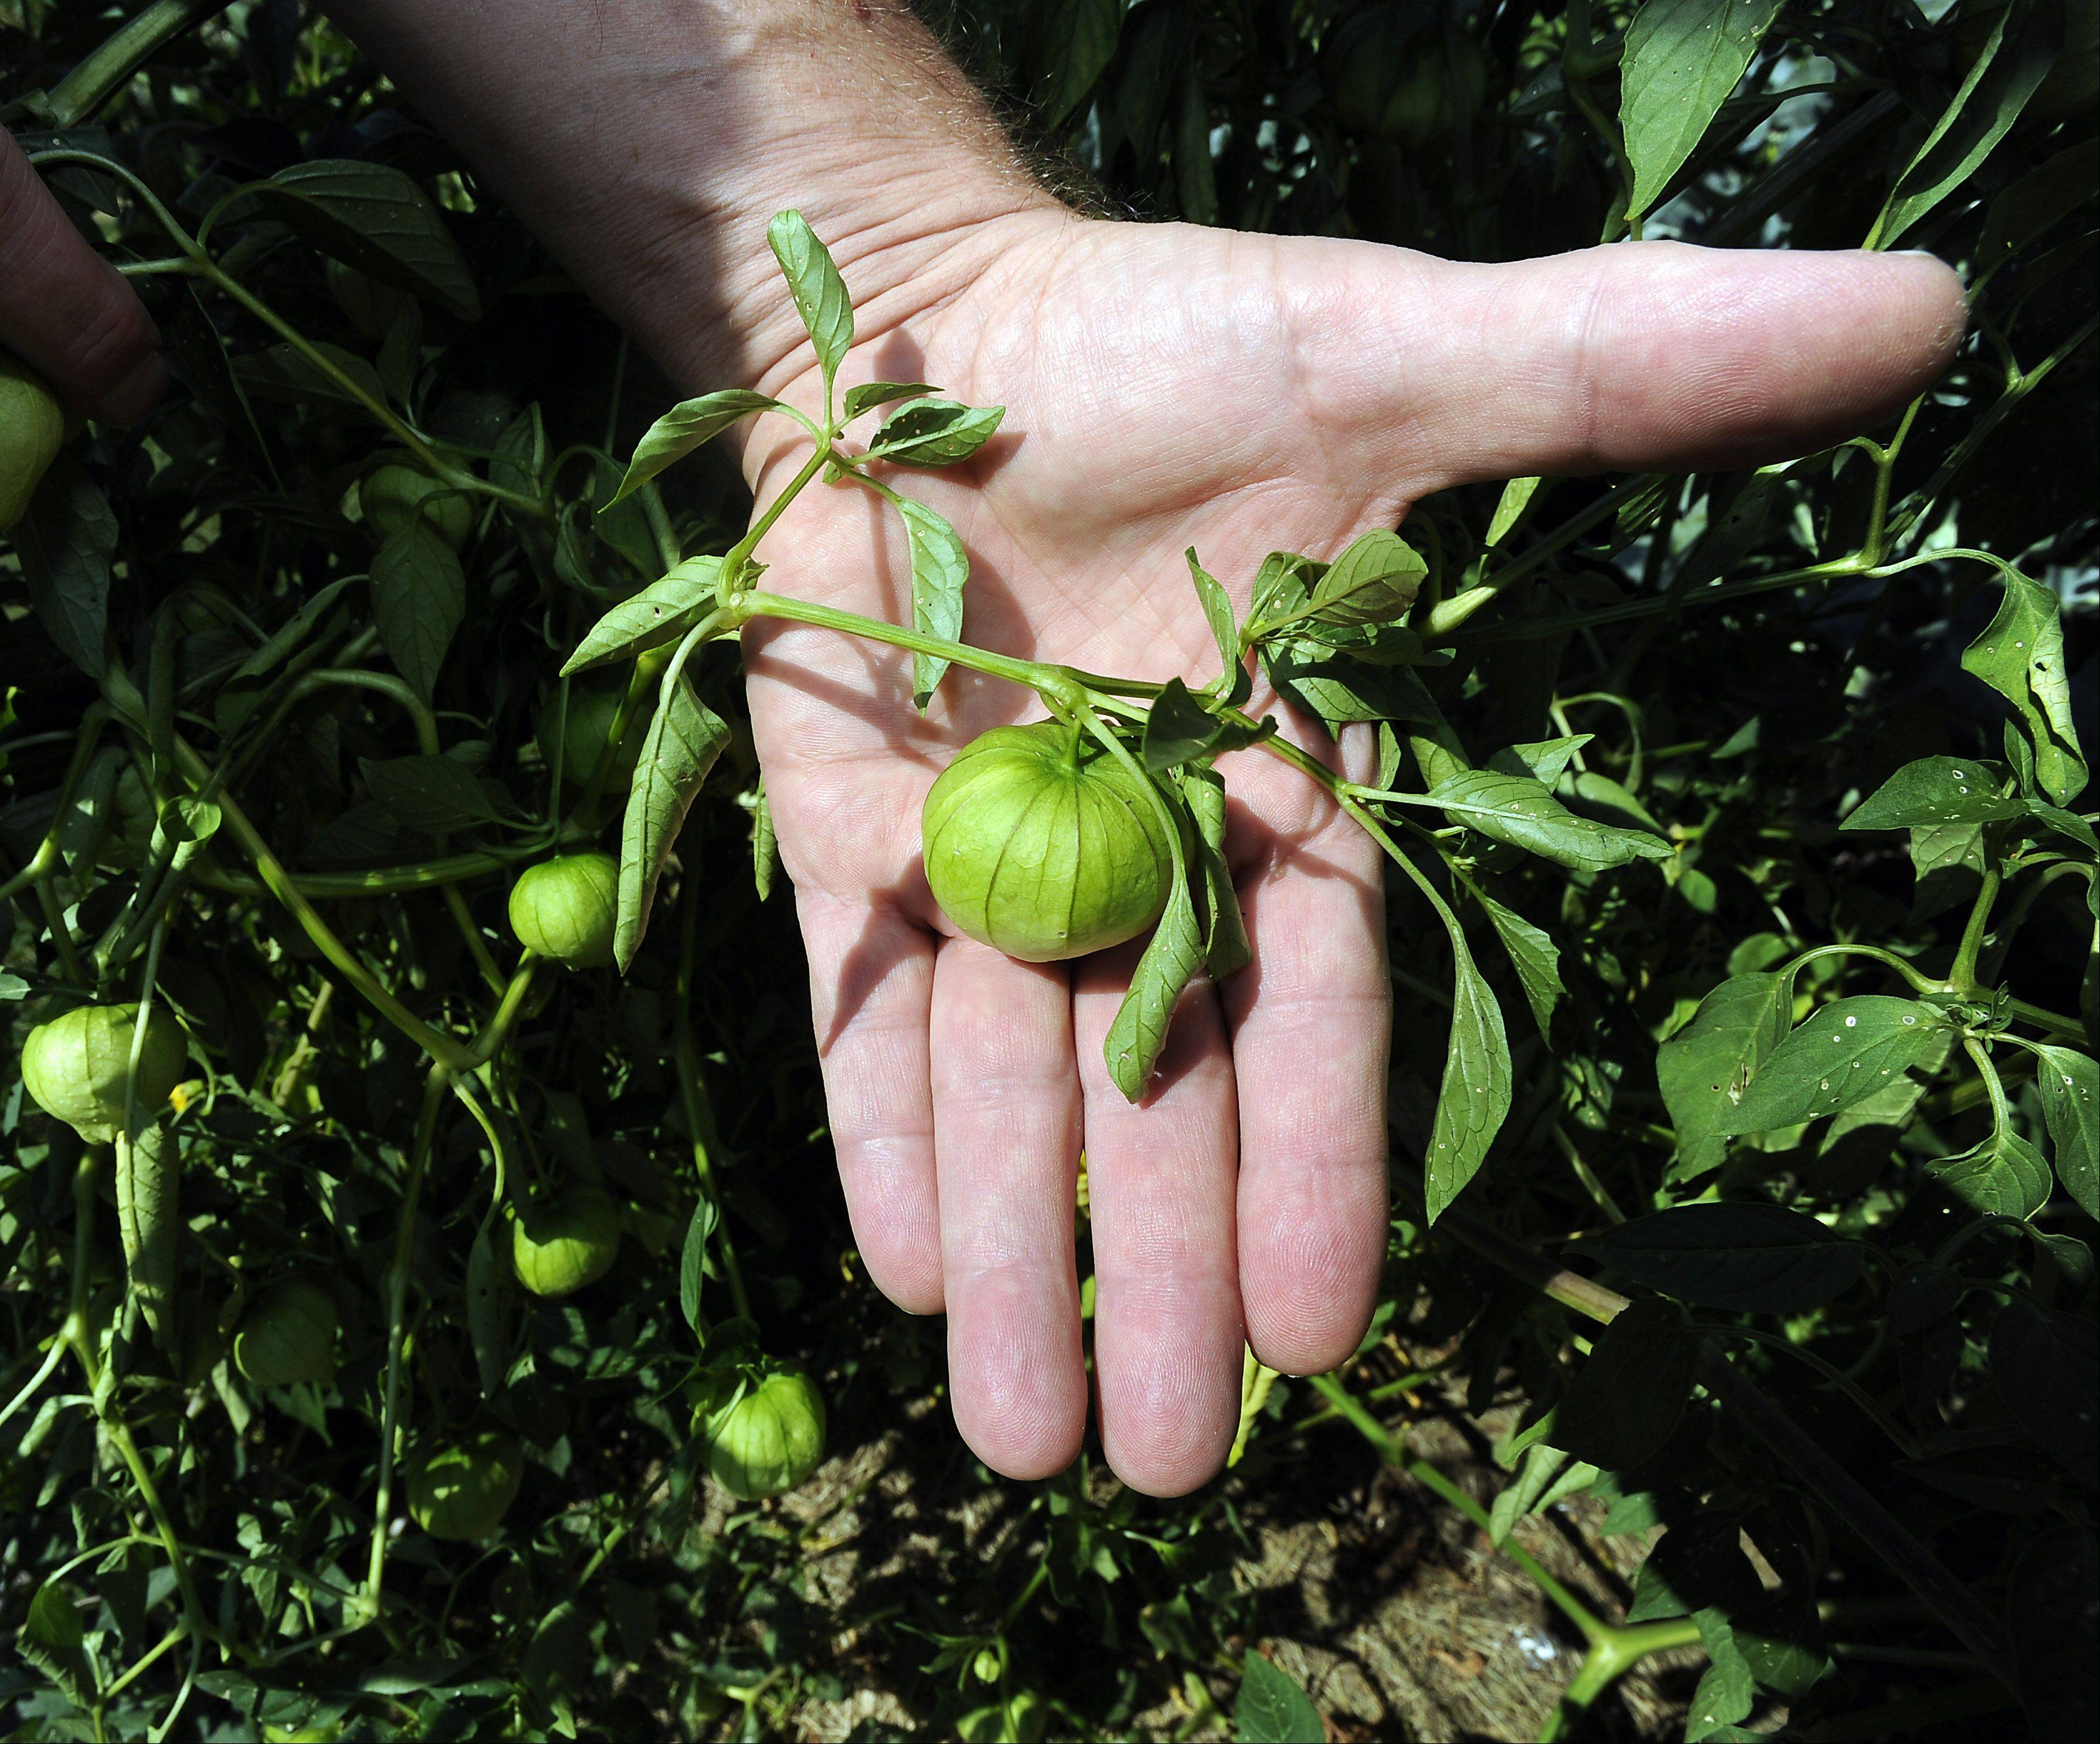 Gardeners at Presbyterian Church of Palatine are learning how to grow a few new crops this year, including tomatillos, which can be used in salsa verde.